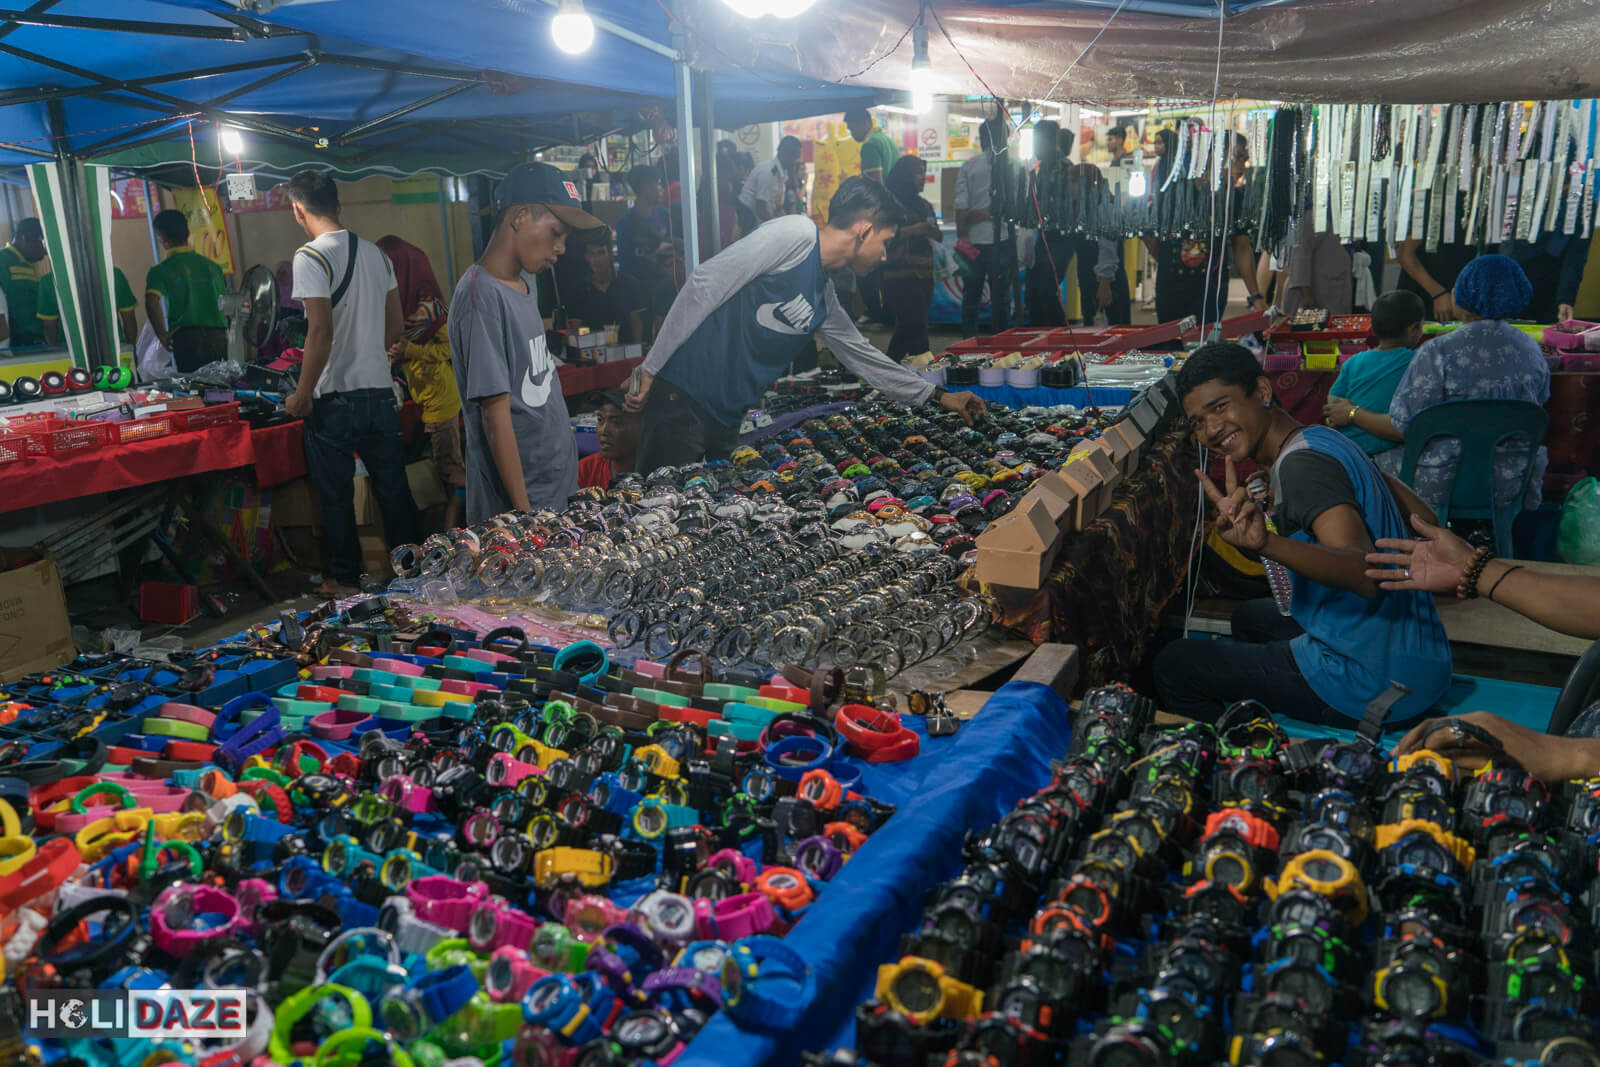 Crowds at the Semporna night market during Lepa-Lepa